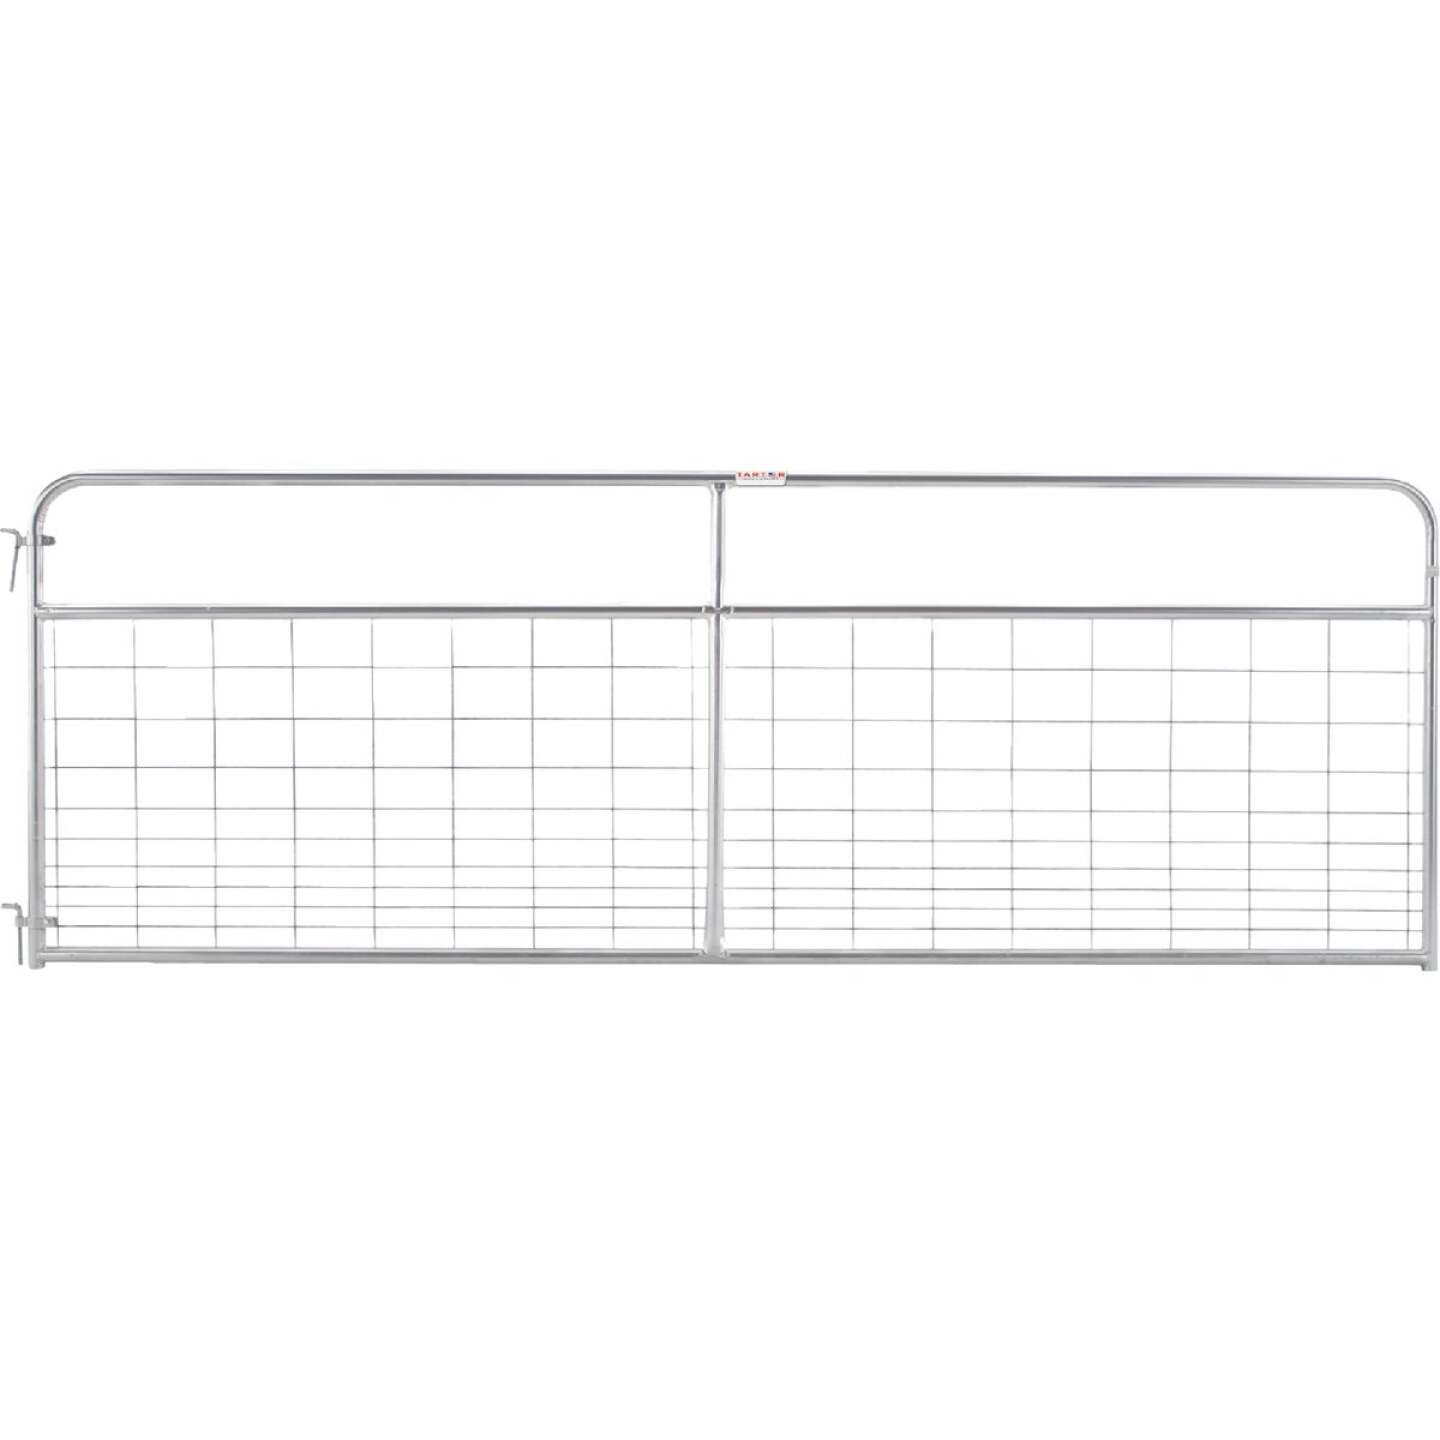 Tarter 50 In. H. x 12 Ft. L. x 1-3/4 In. Tube Diameter Galvanized Wire-Filled Tube Gate Image 1